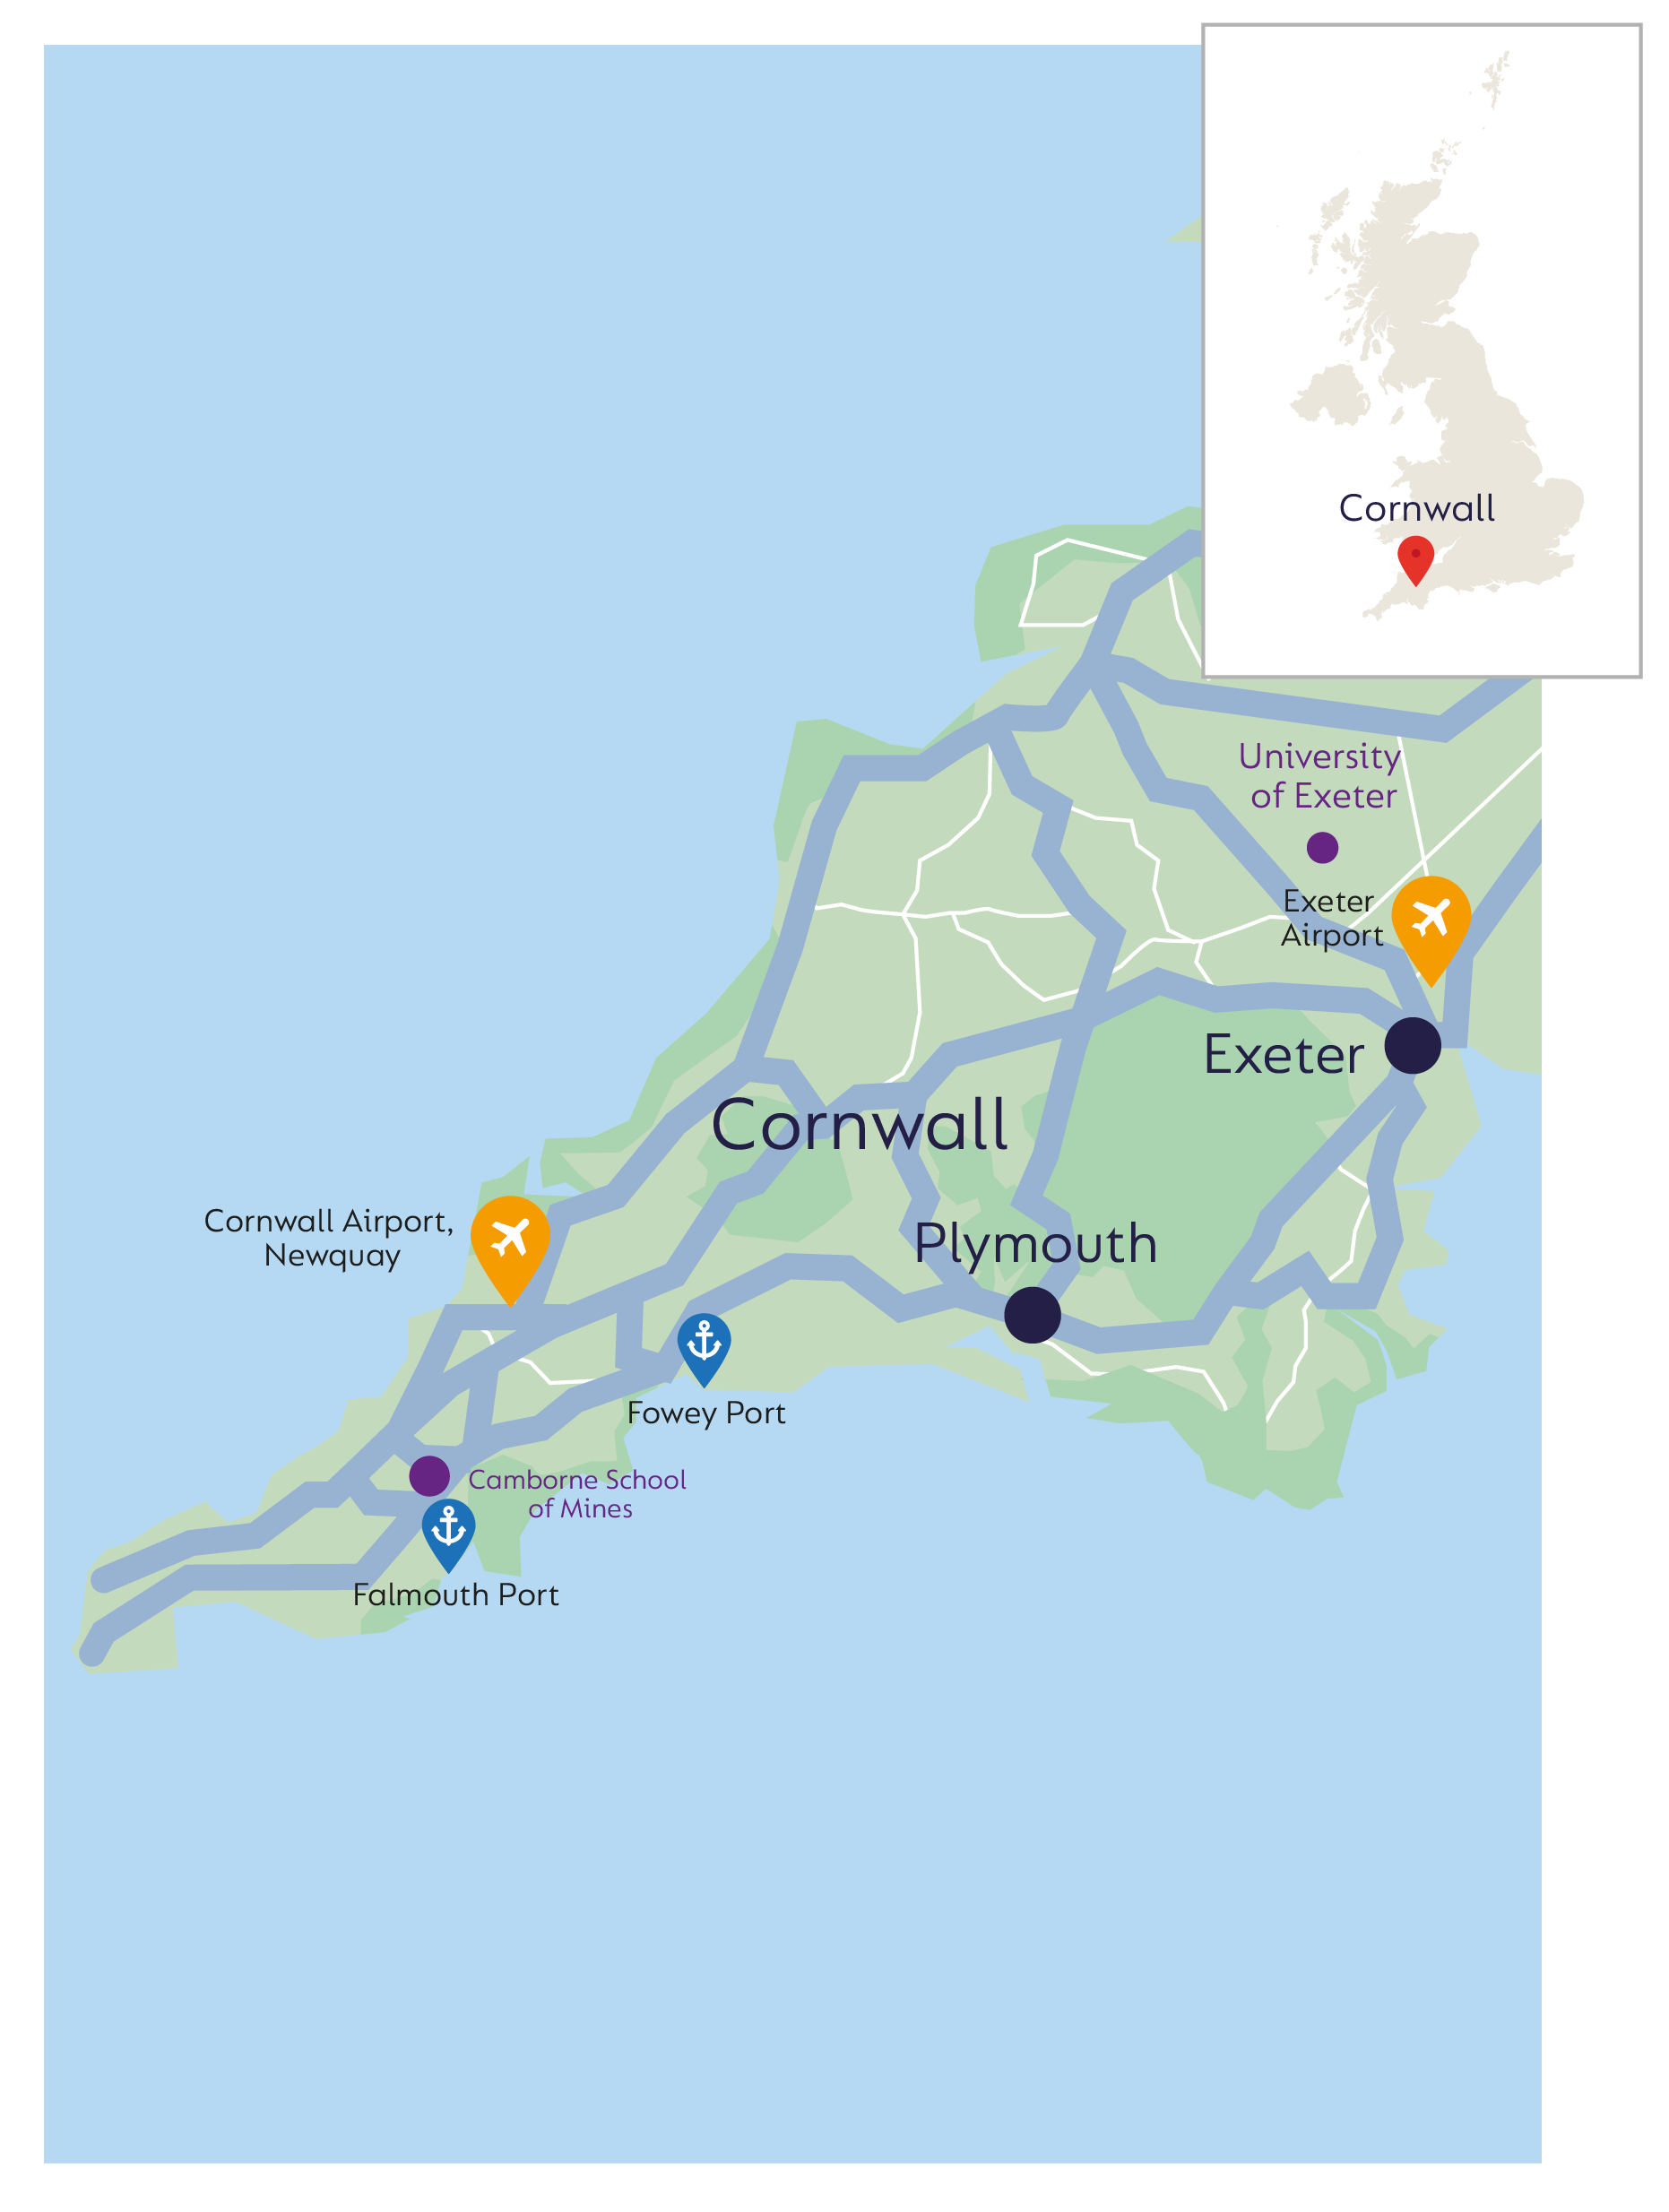 map of Cornwall for mining